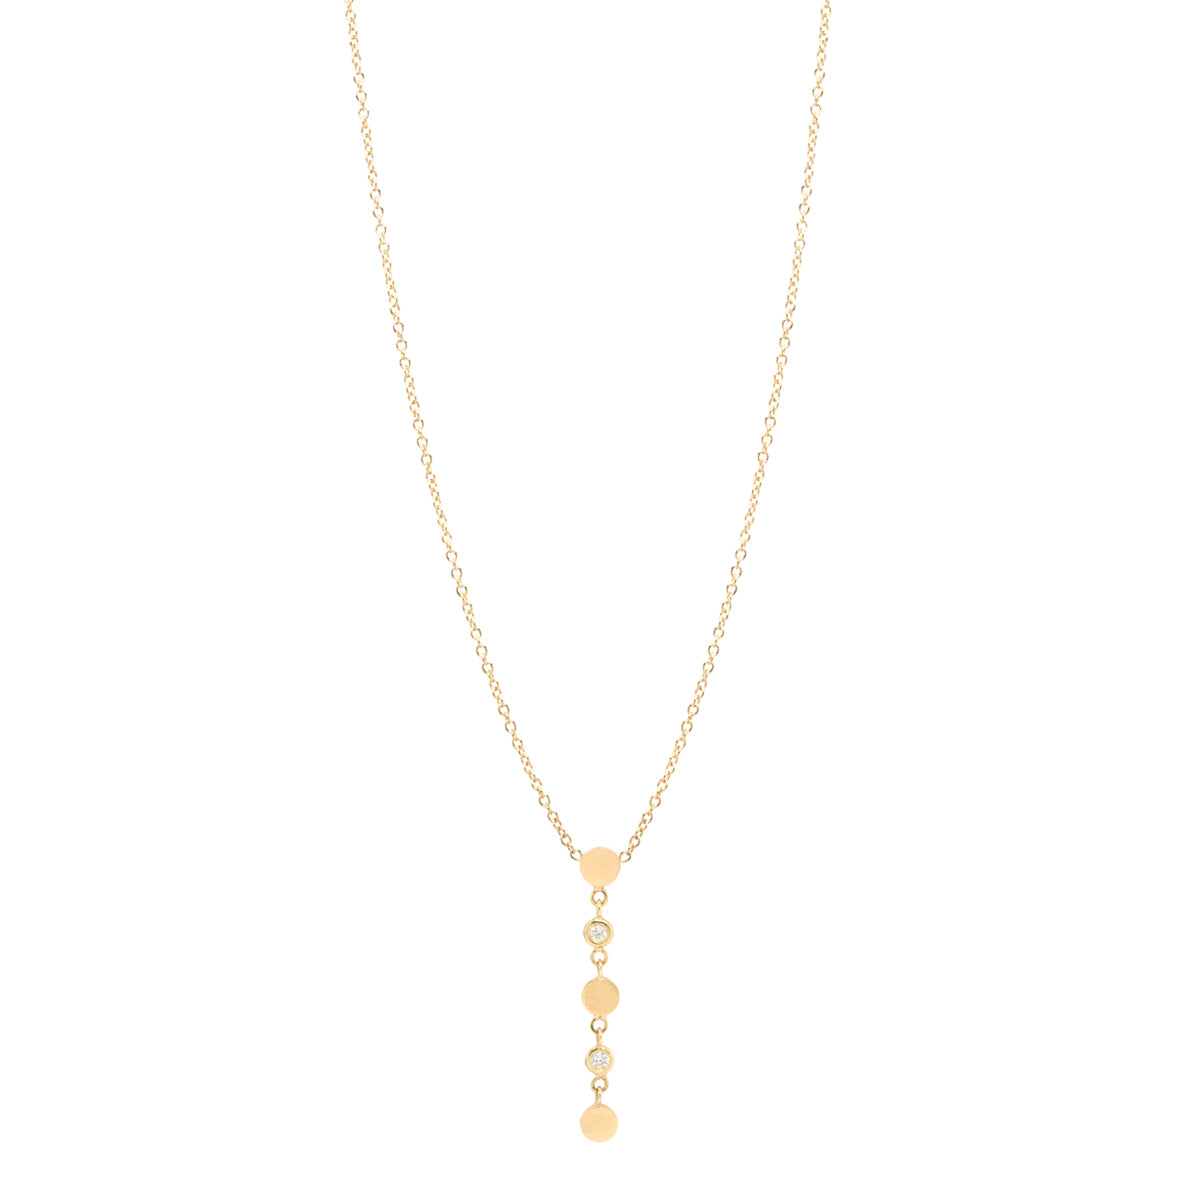 14k 3 itty bitty discs with floating diamonds drop necklace